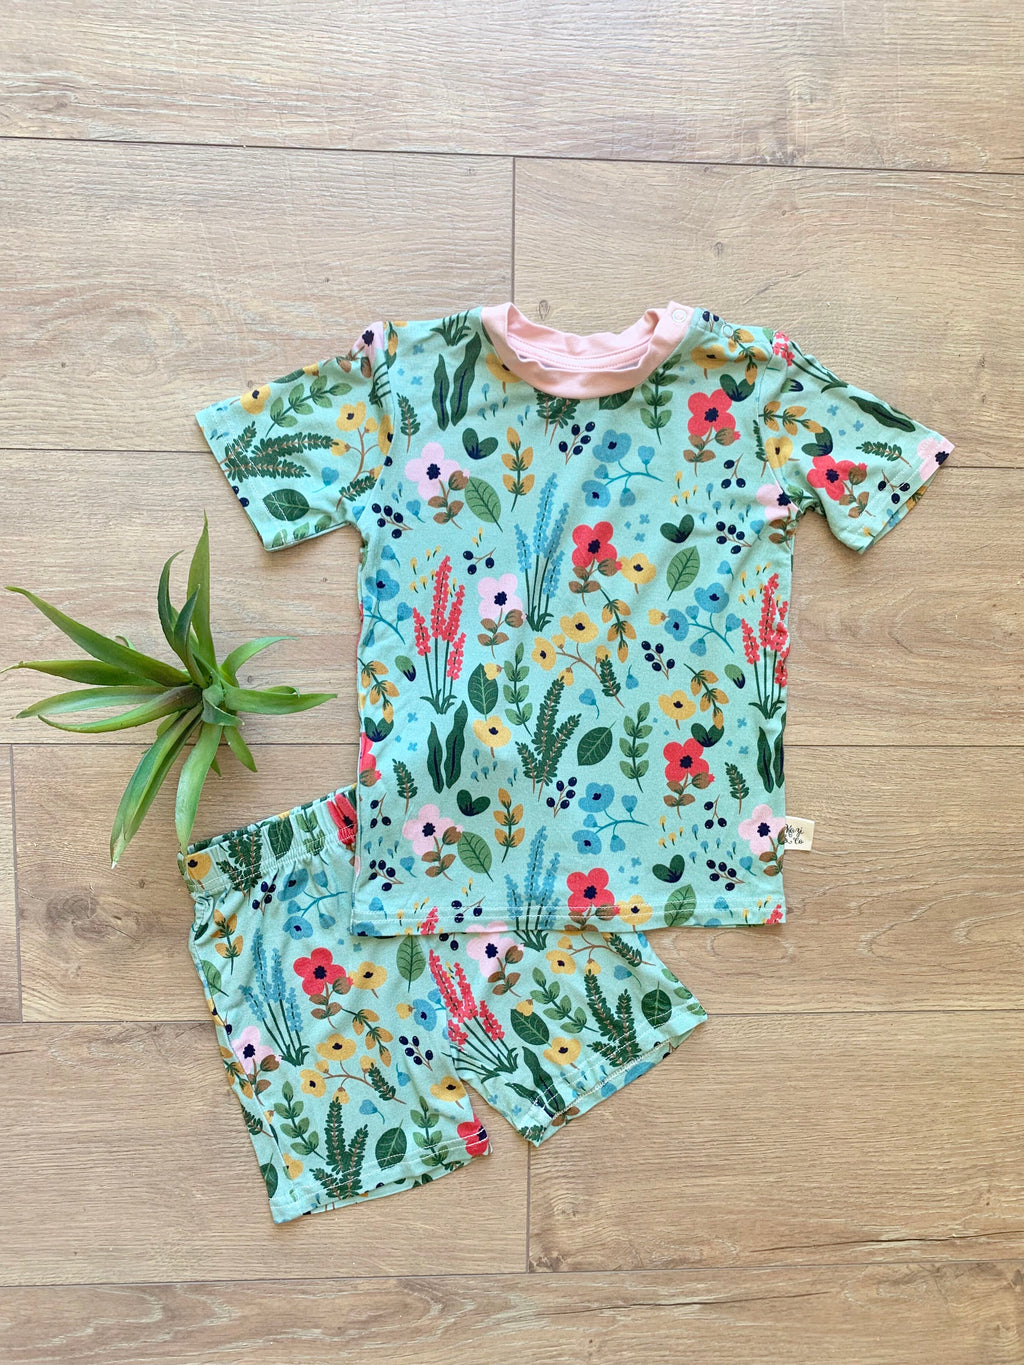 Kozi & Co - Spring 2020 Collection - Short Pajama Set - Le Jardin